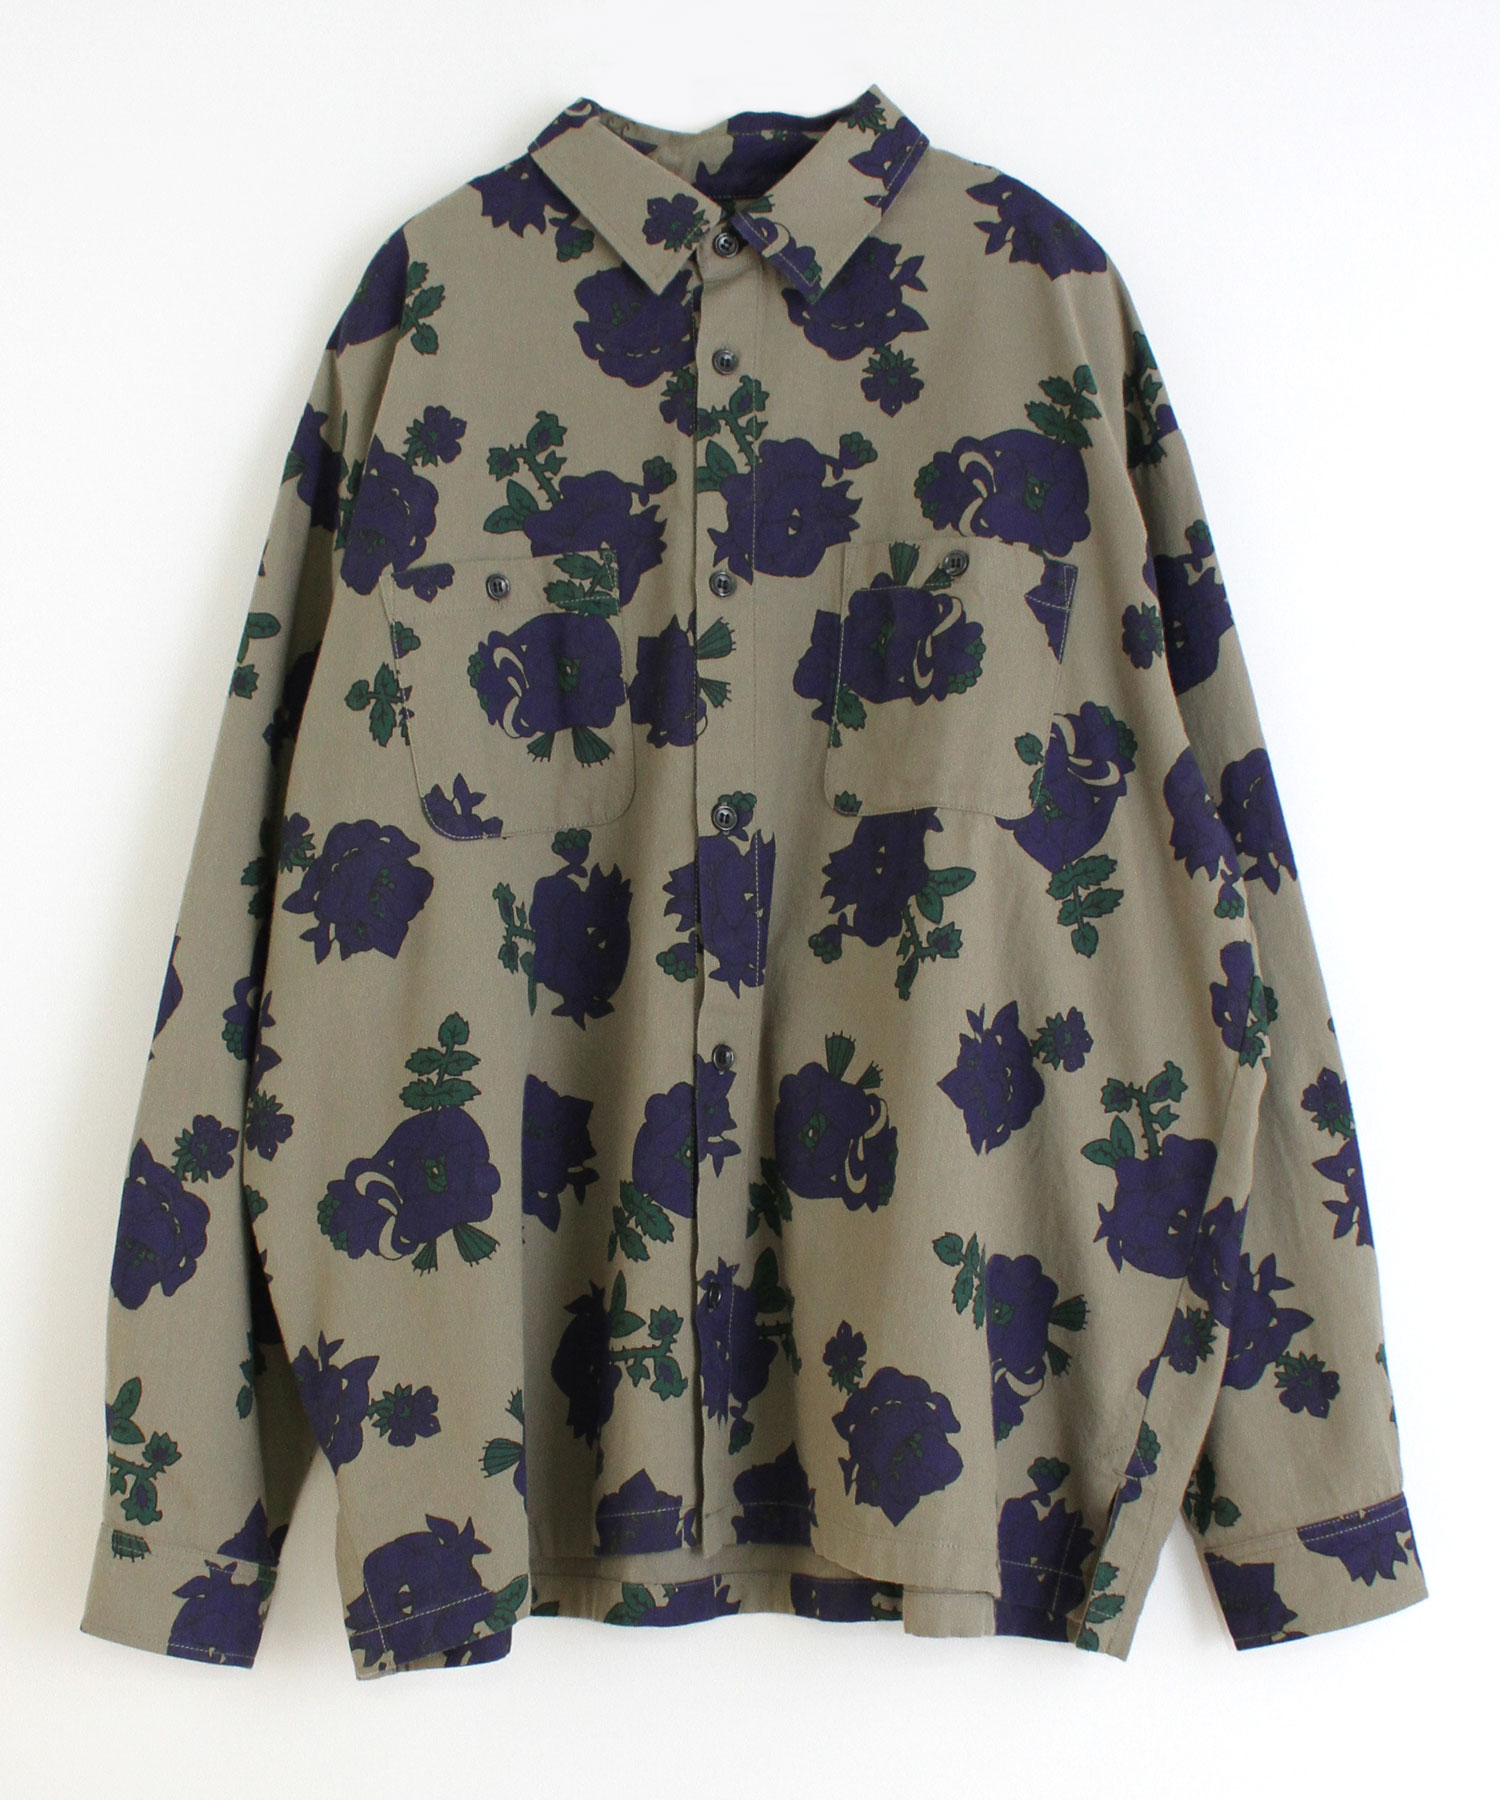 B2529 Creepy Flower BIGシャツ